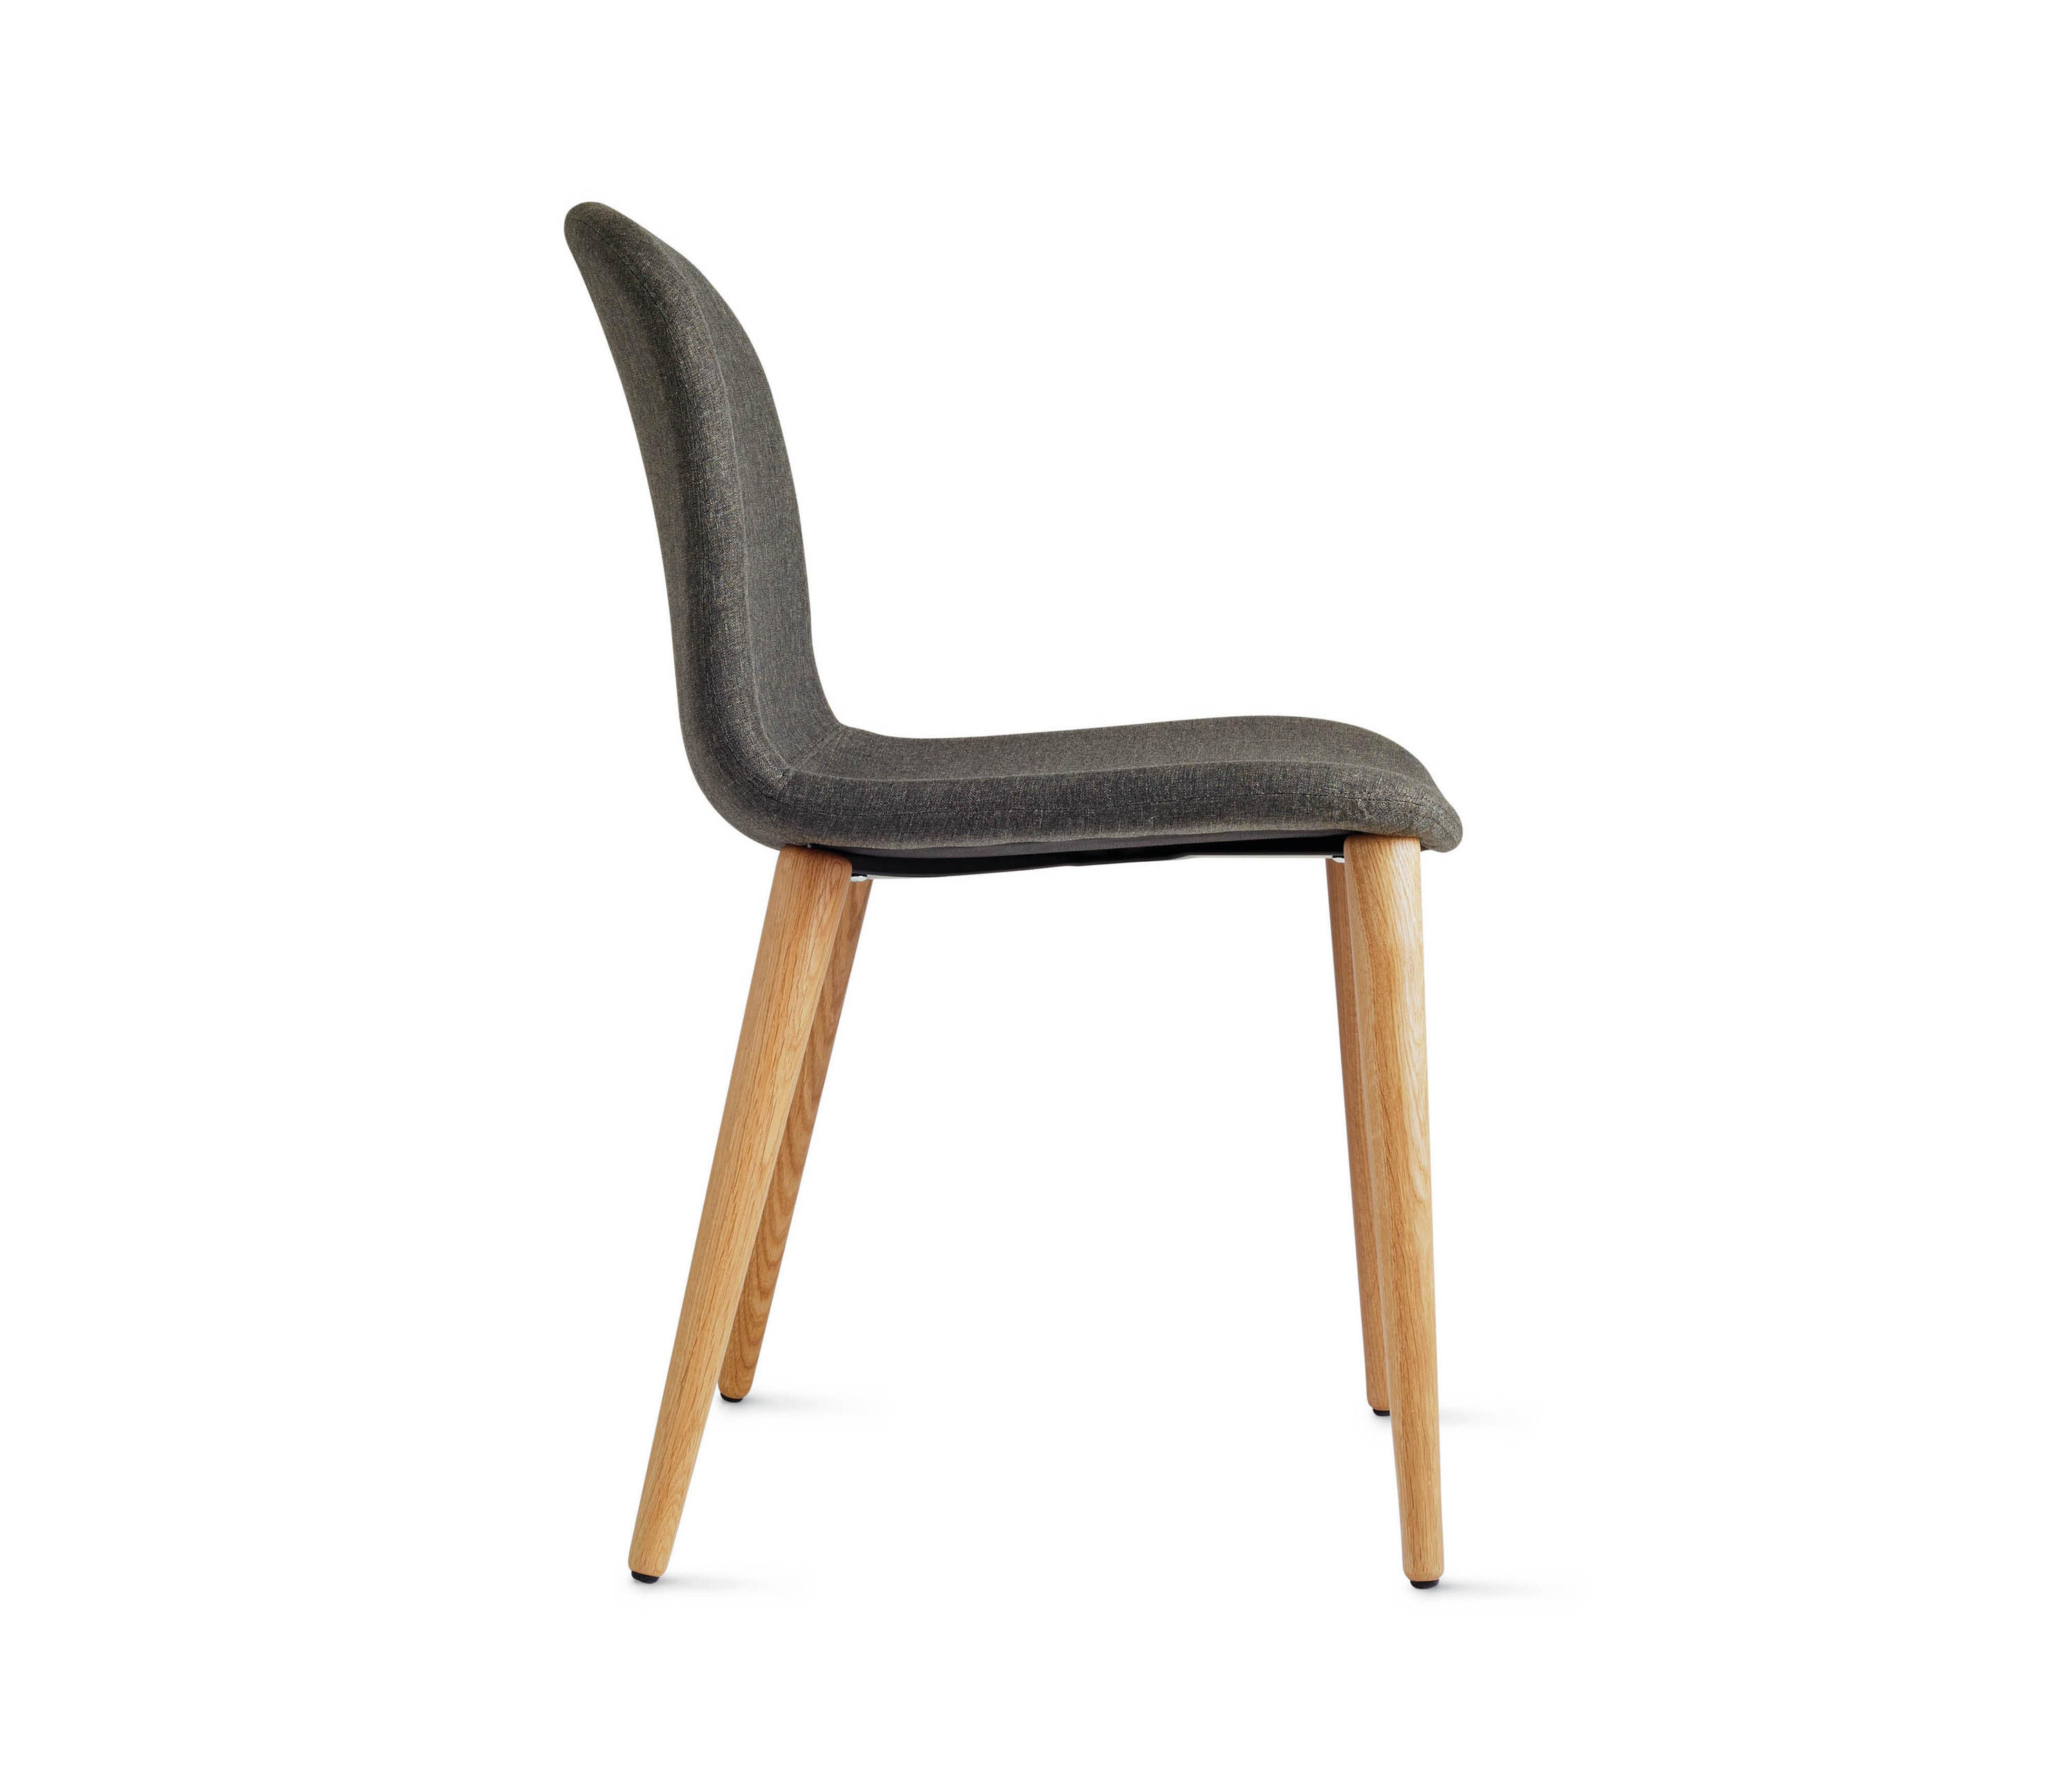 OAK LEGS - Chairs From Design